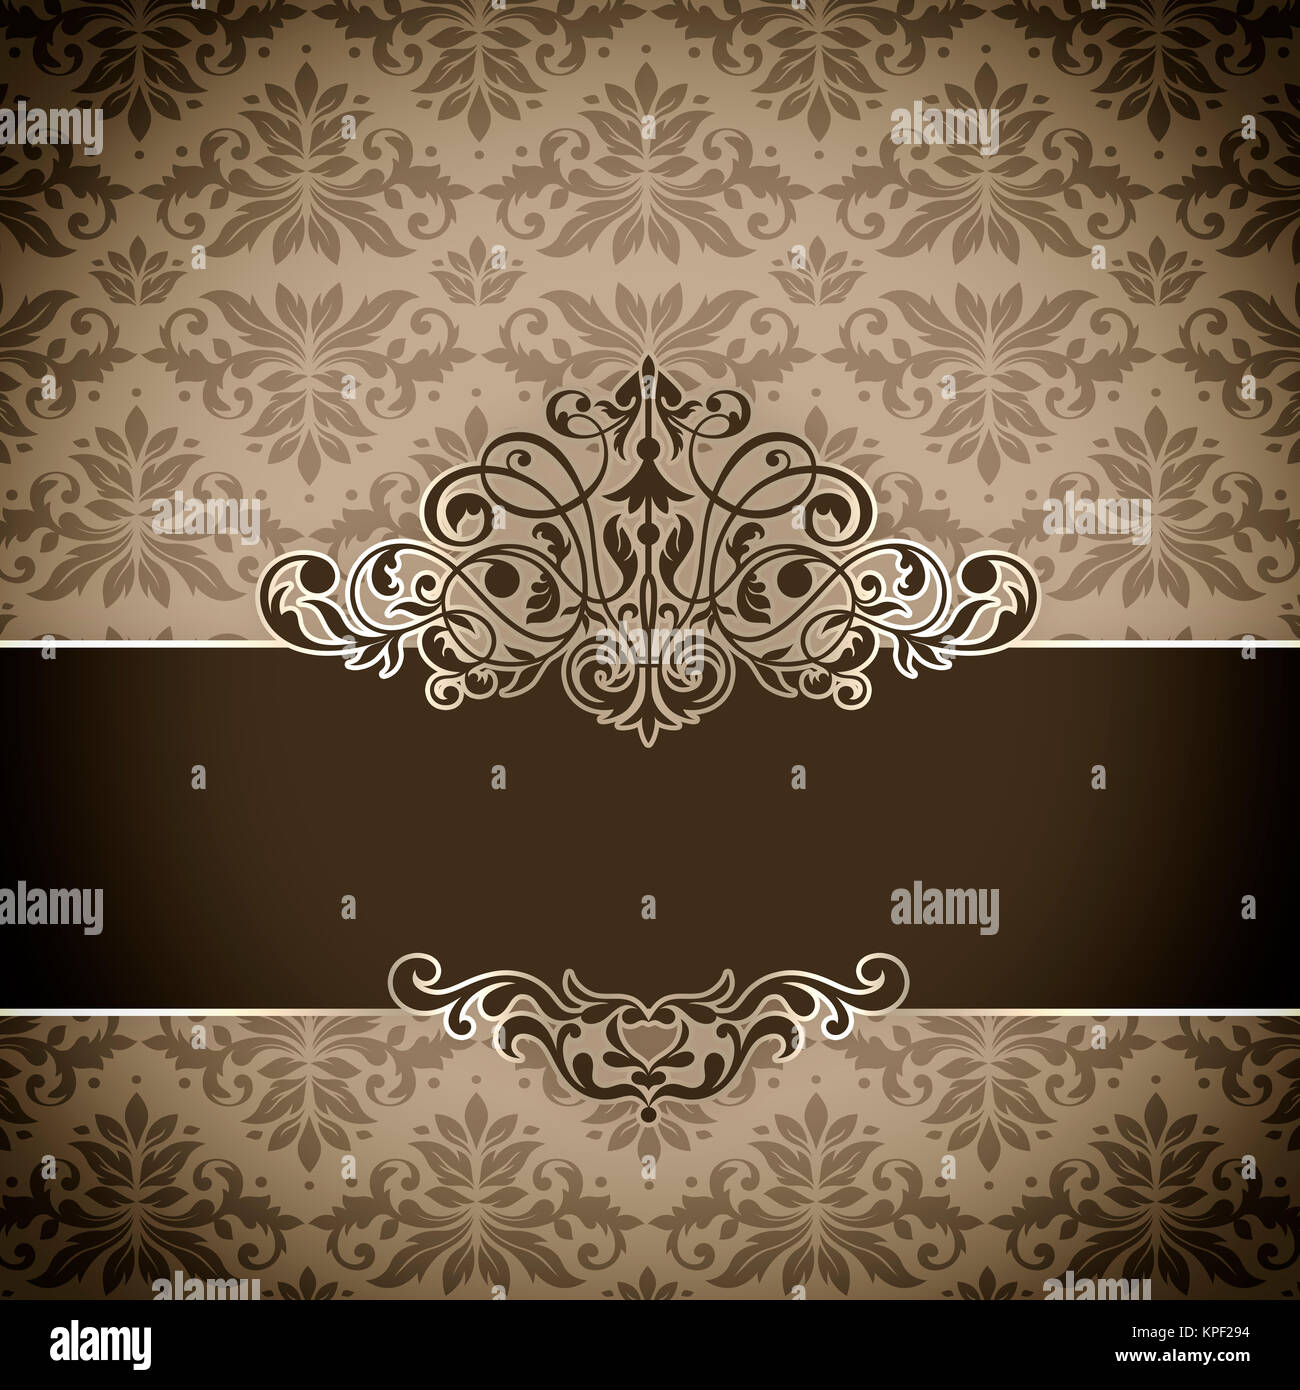 Decorative vintage background with old,fashioned patterns